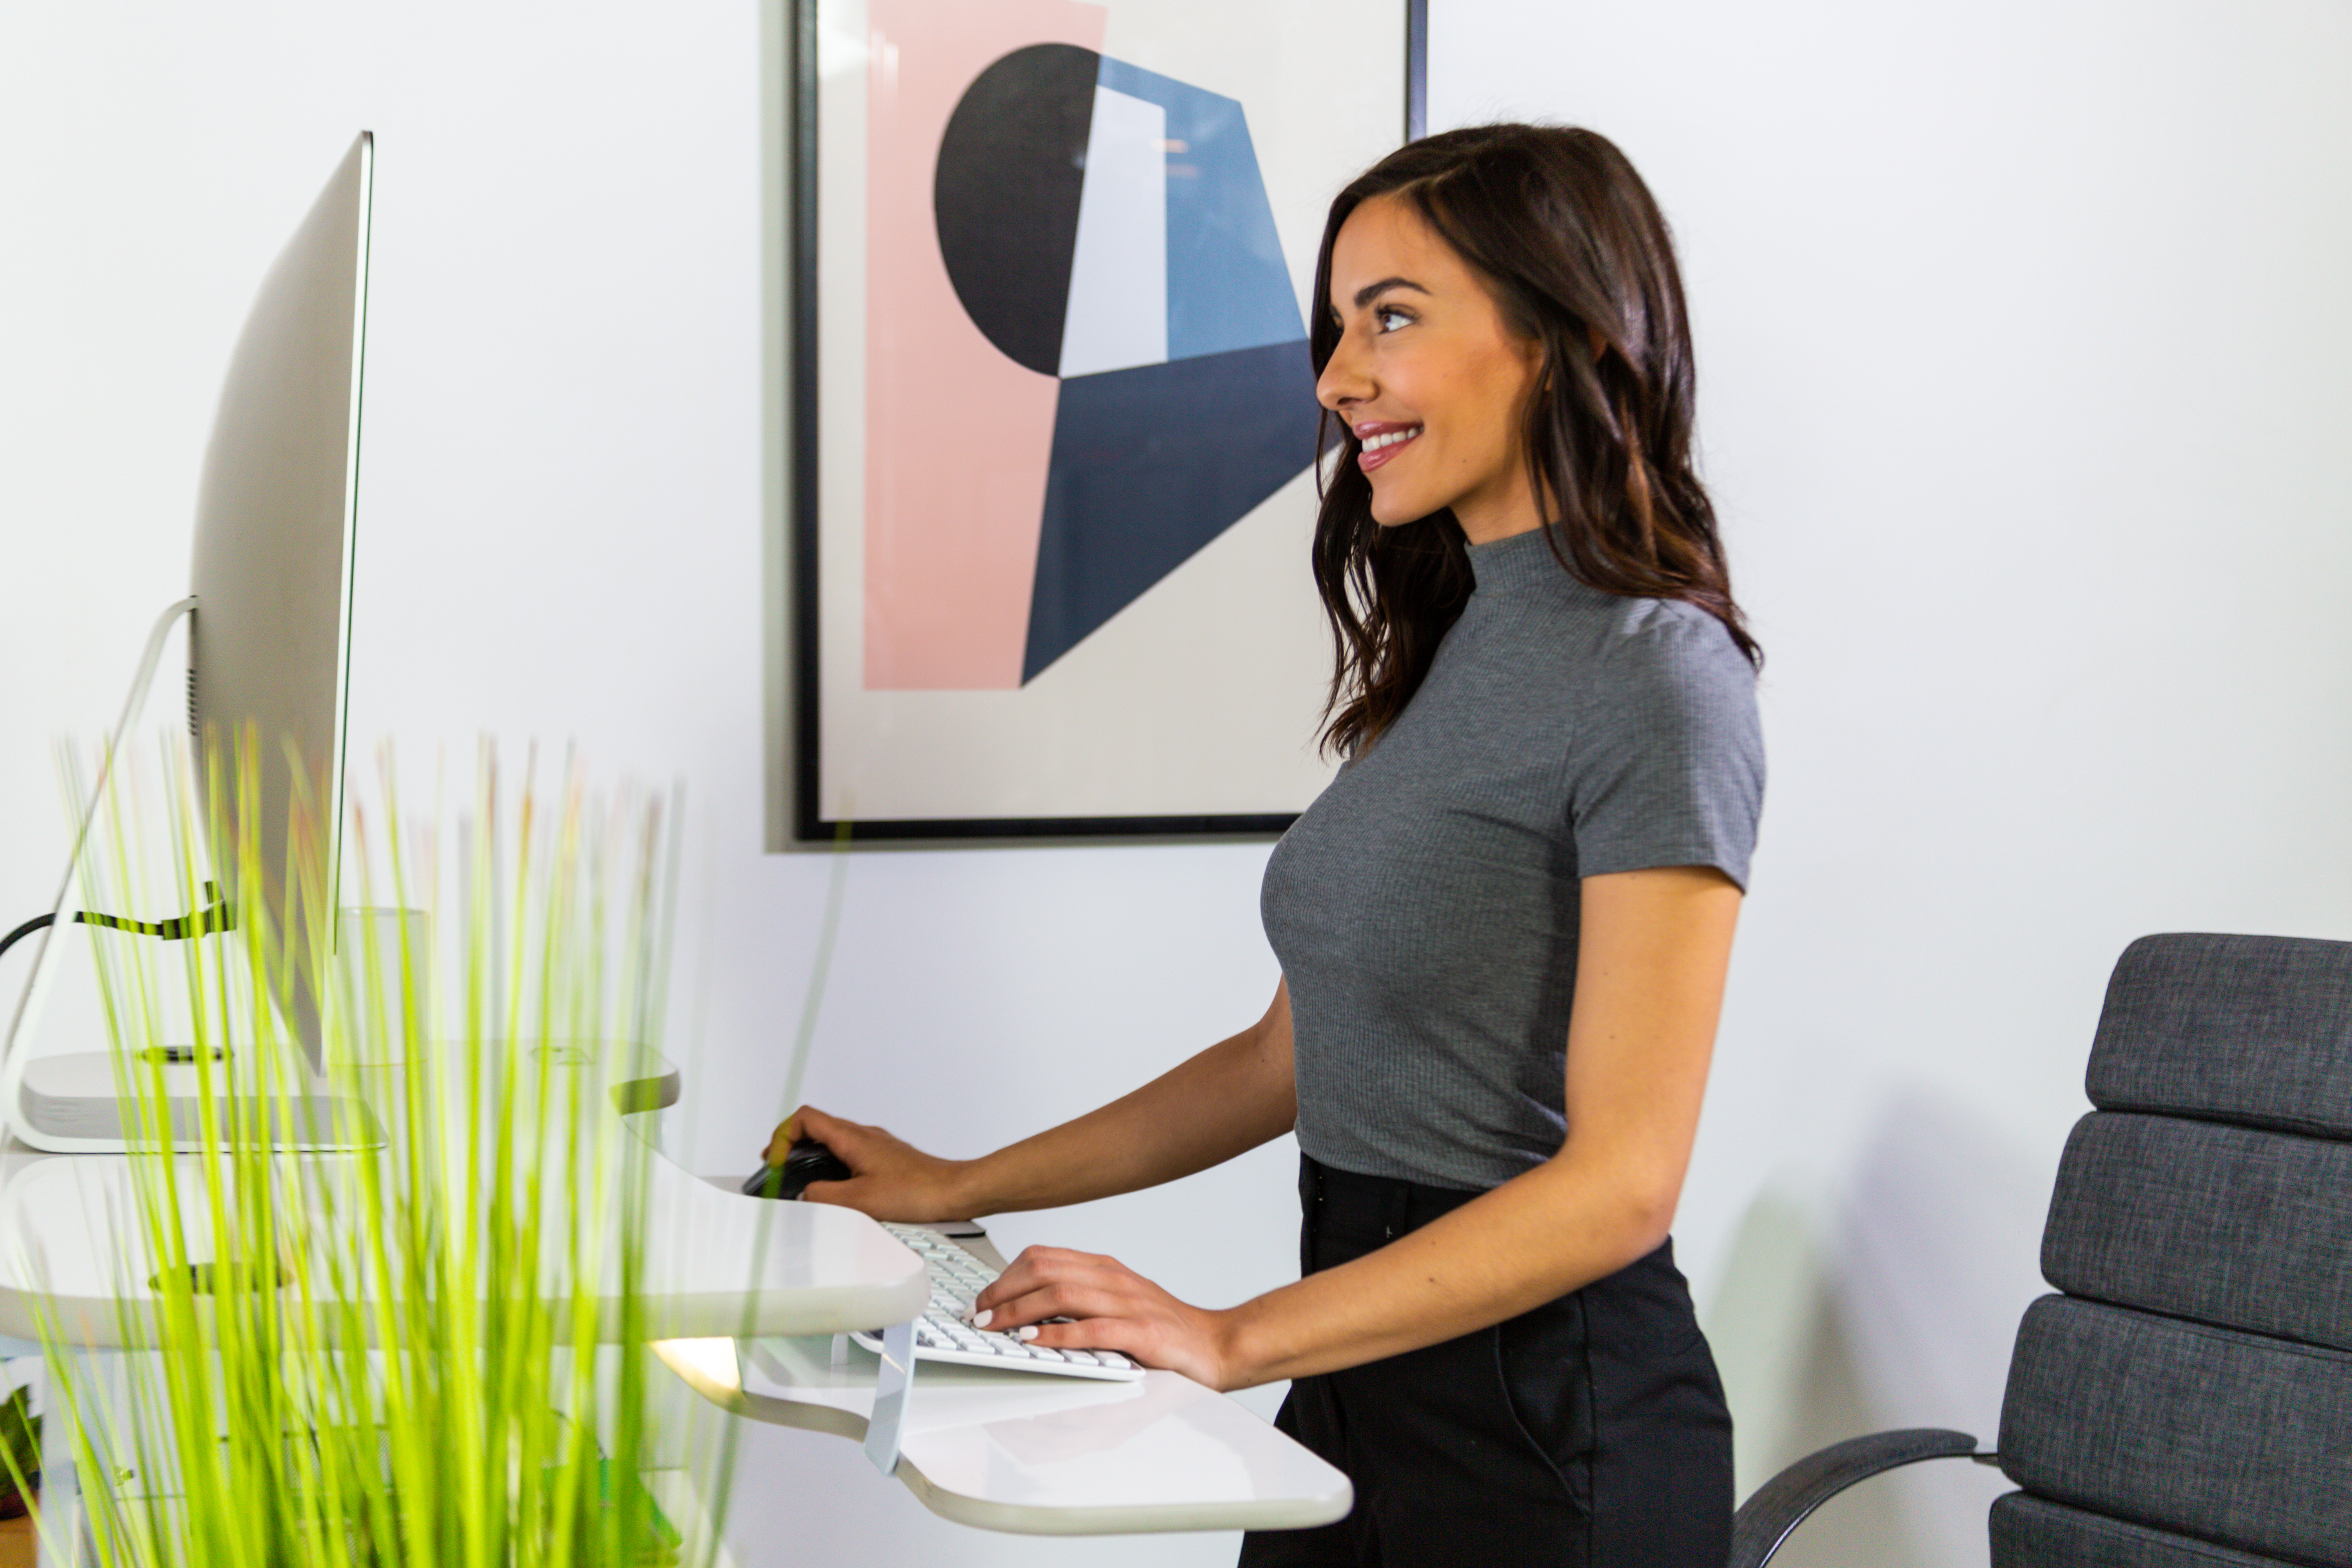 Power Pro electric standing desk converter